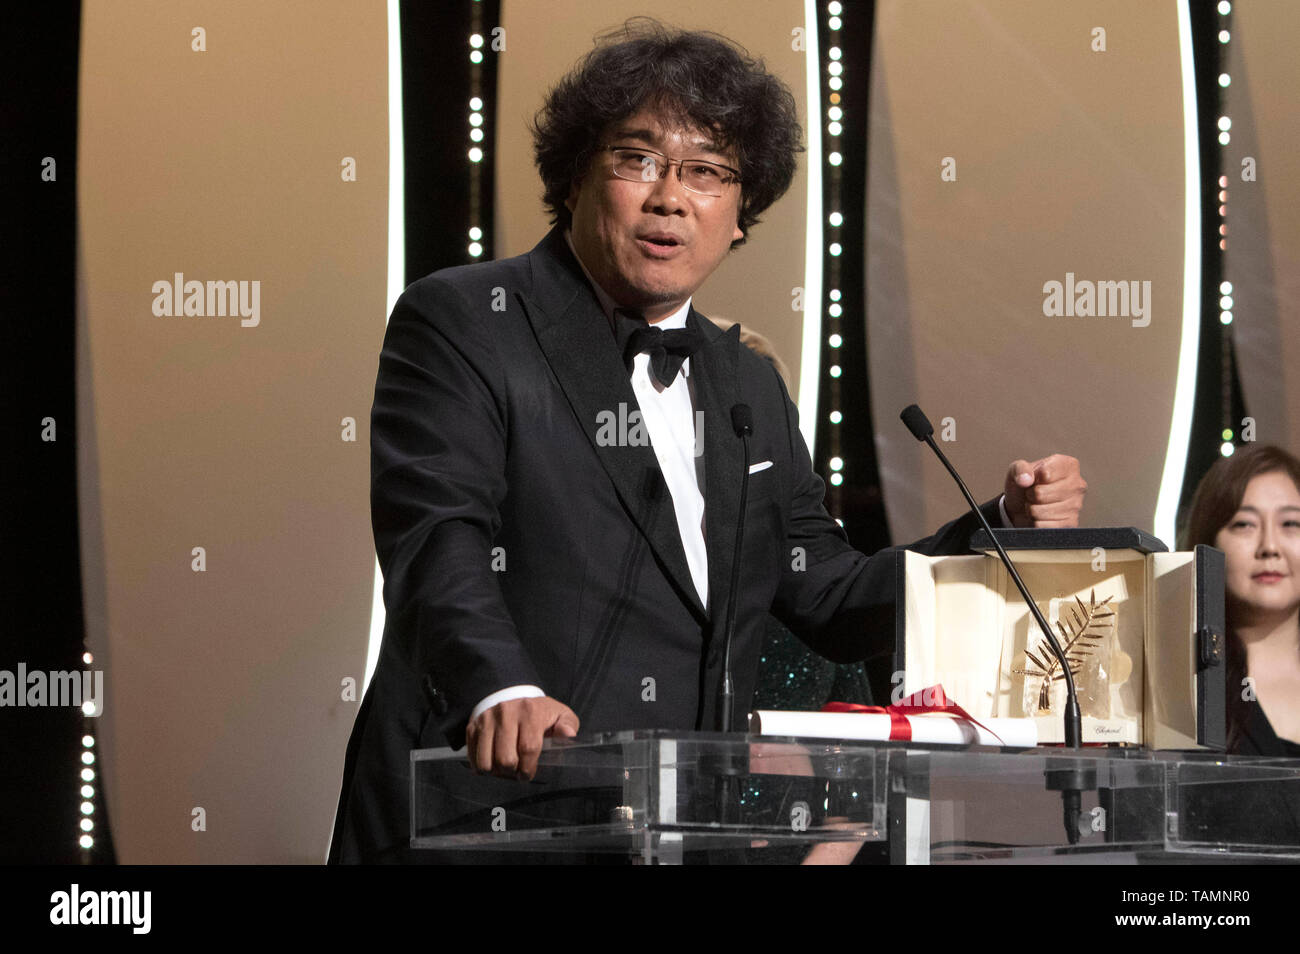 Bong Joon-ho with his Palme d'Or (Golden Palm) for the movie